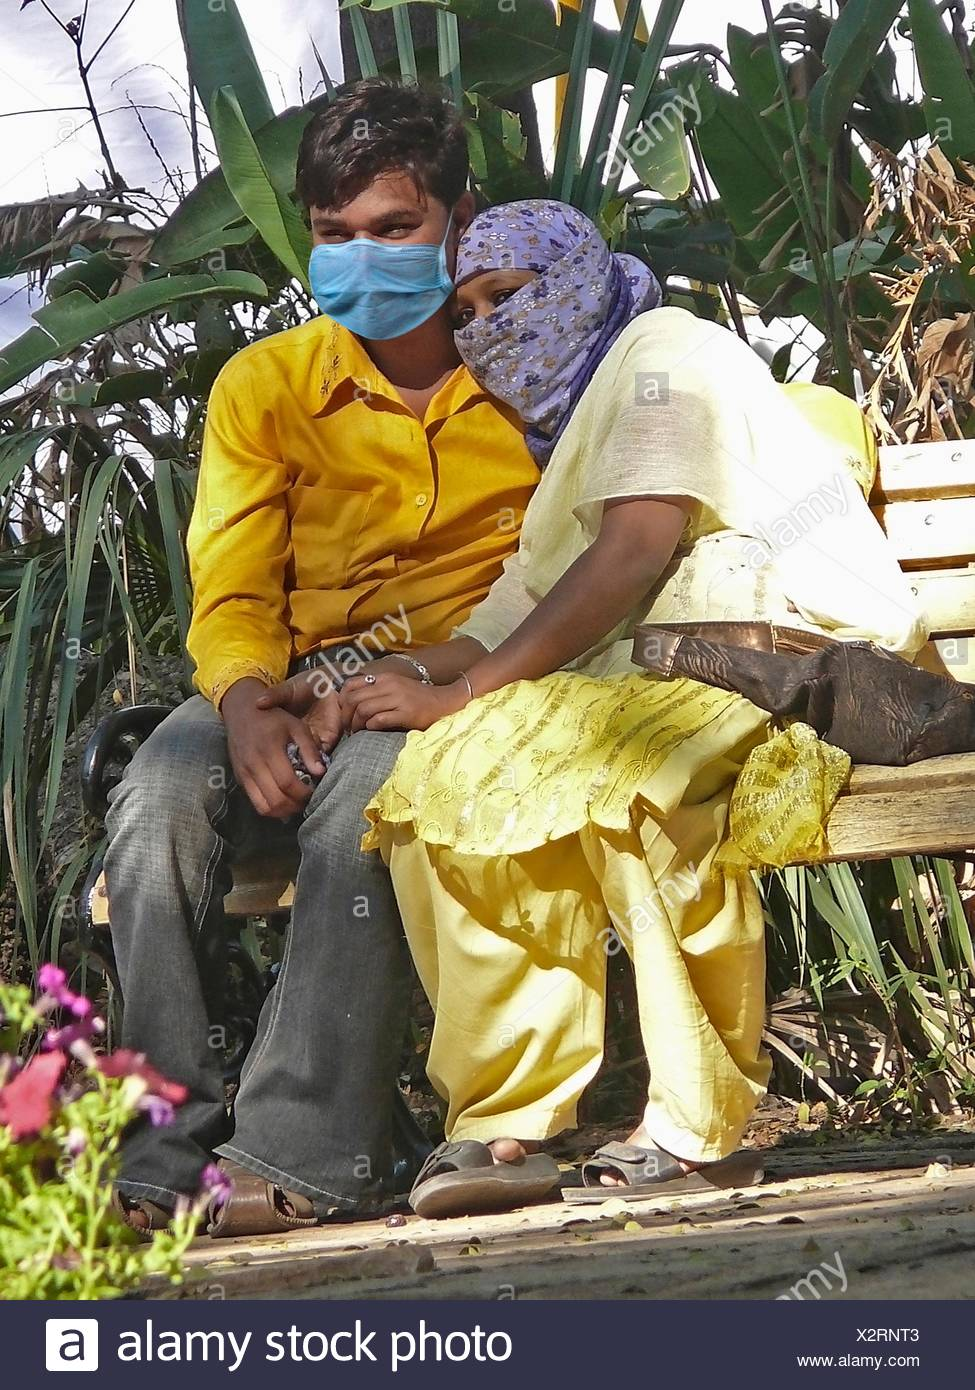 Young couple in a garden with Precaution mask for Swine Flu, H1N1 - Stock Image